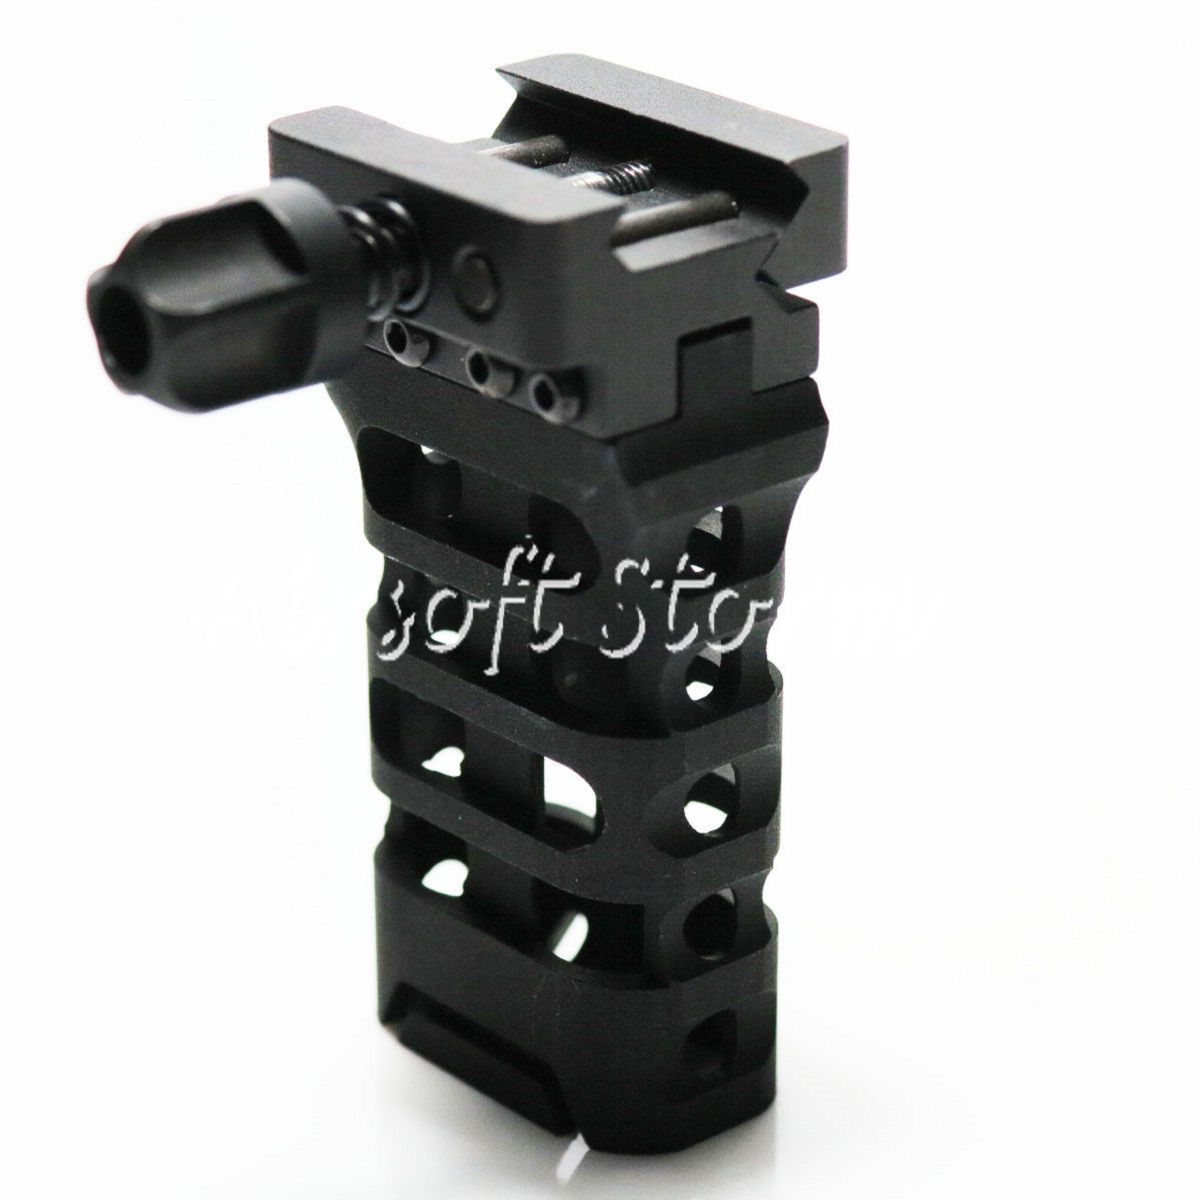 Airsoft Tactical Gear 5KU Quick Detach QD Ultralight Vertical Grip Black